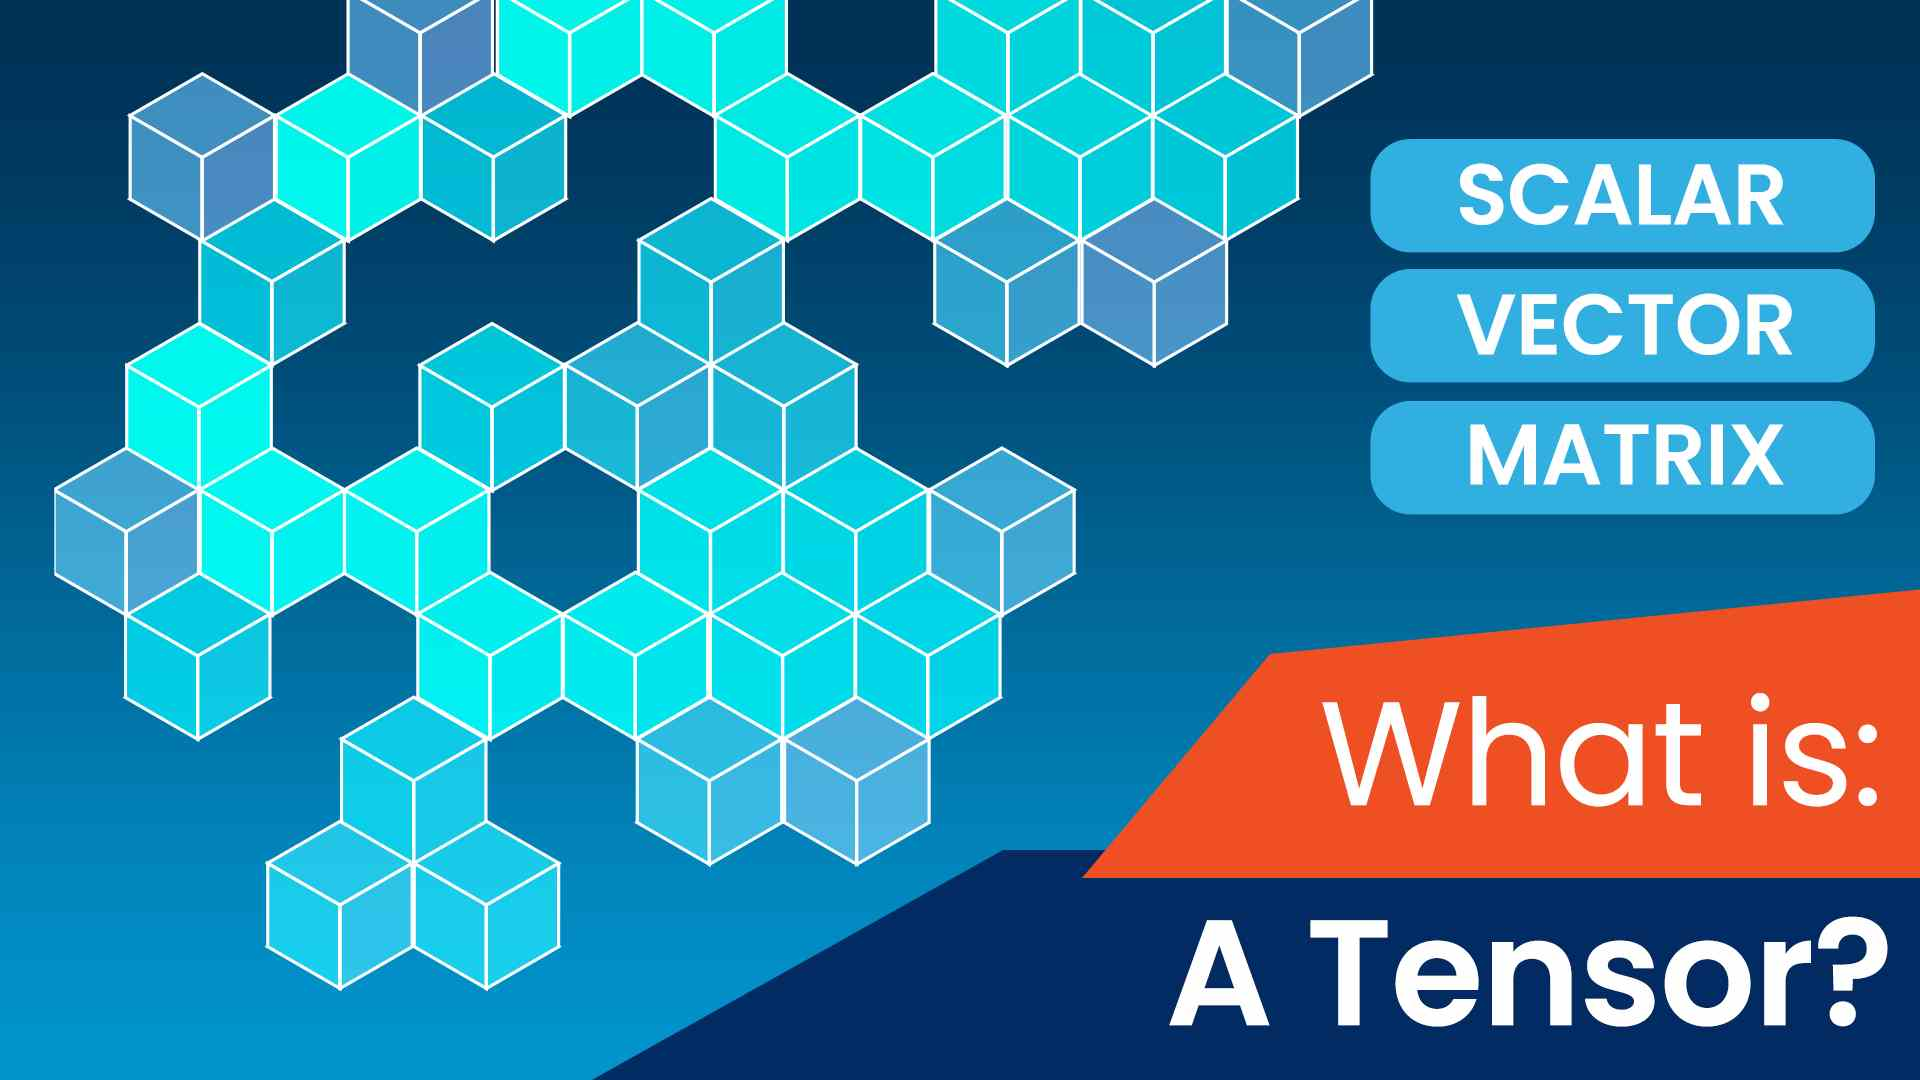 What Is a Tensor?